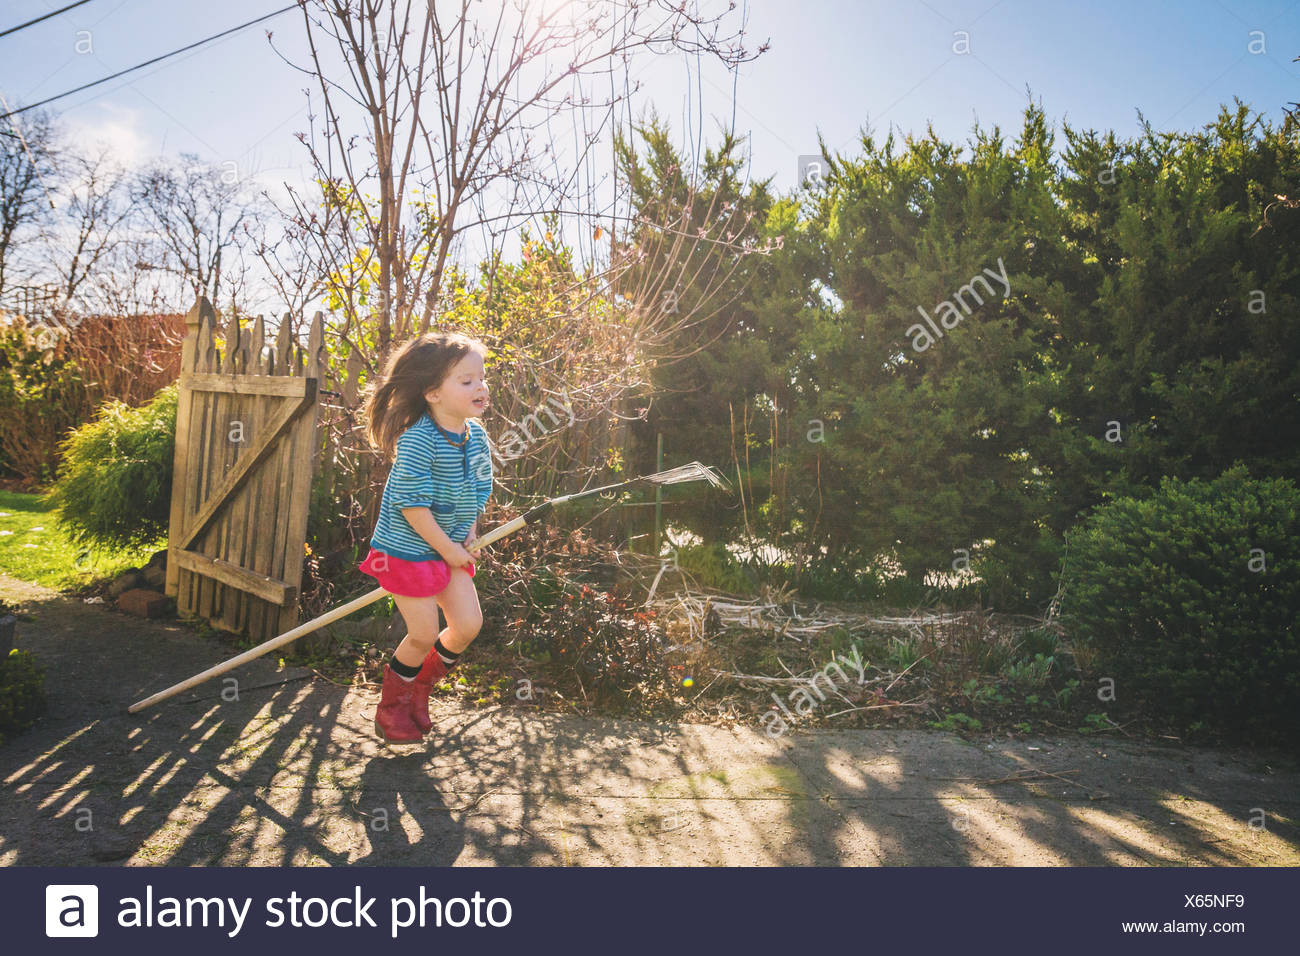 Young girl riding rake through yard like it's a horse - Stock Image